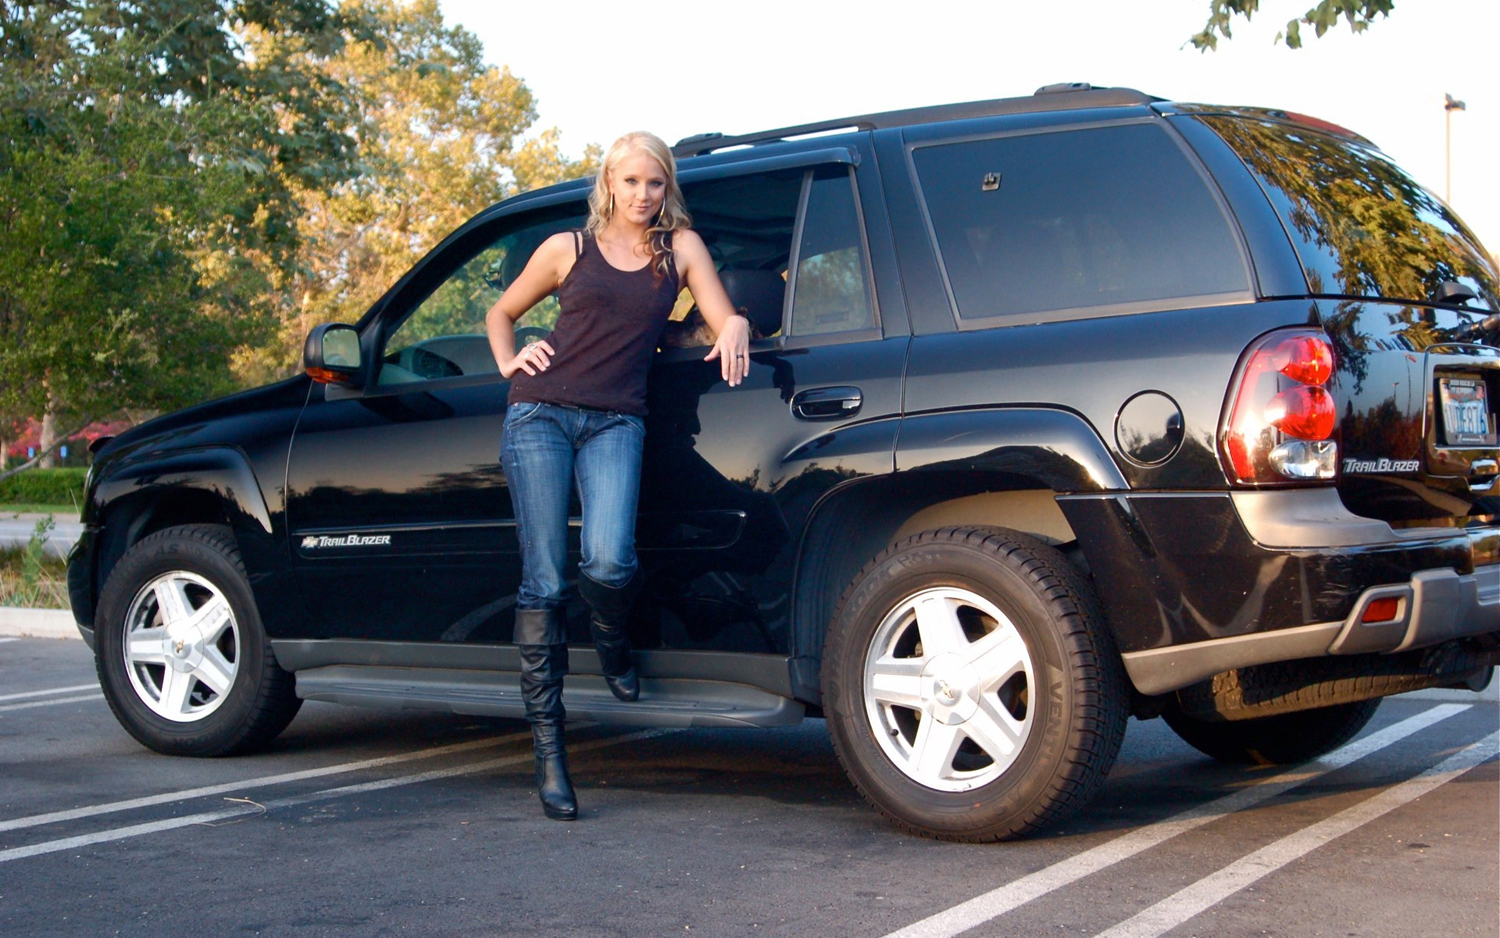 hight resolution of celebrity drive actress kristen renton of fx s sons of anarchy chevy trailblazer